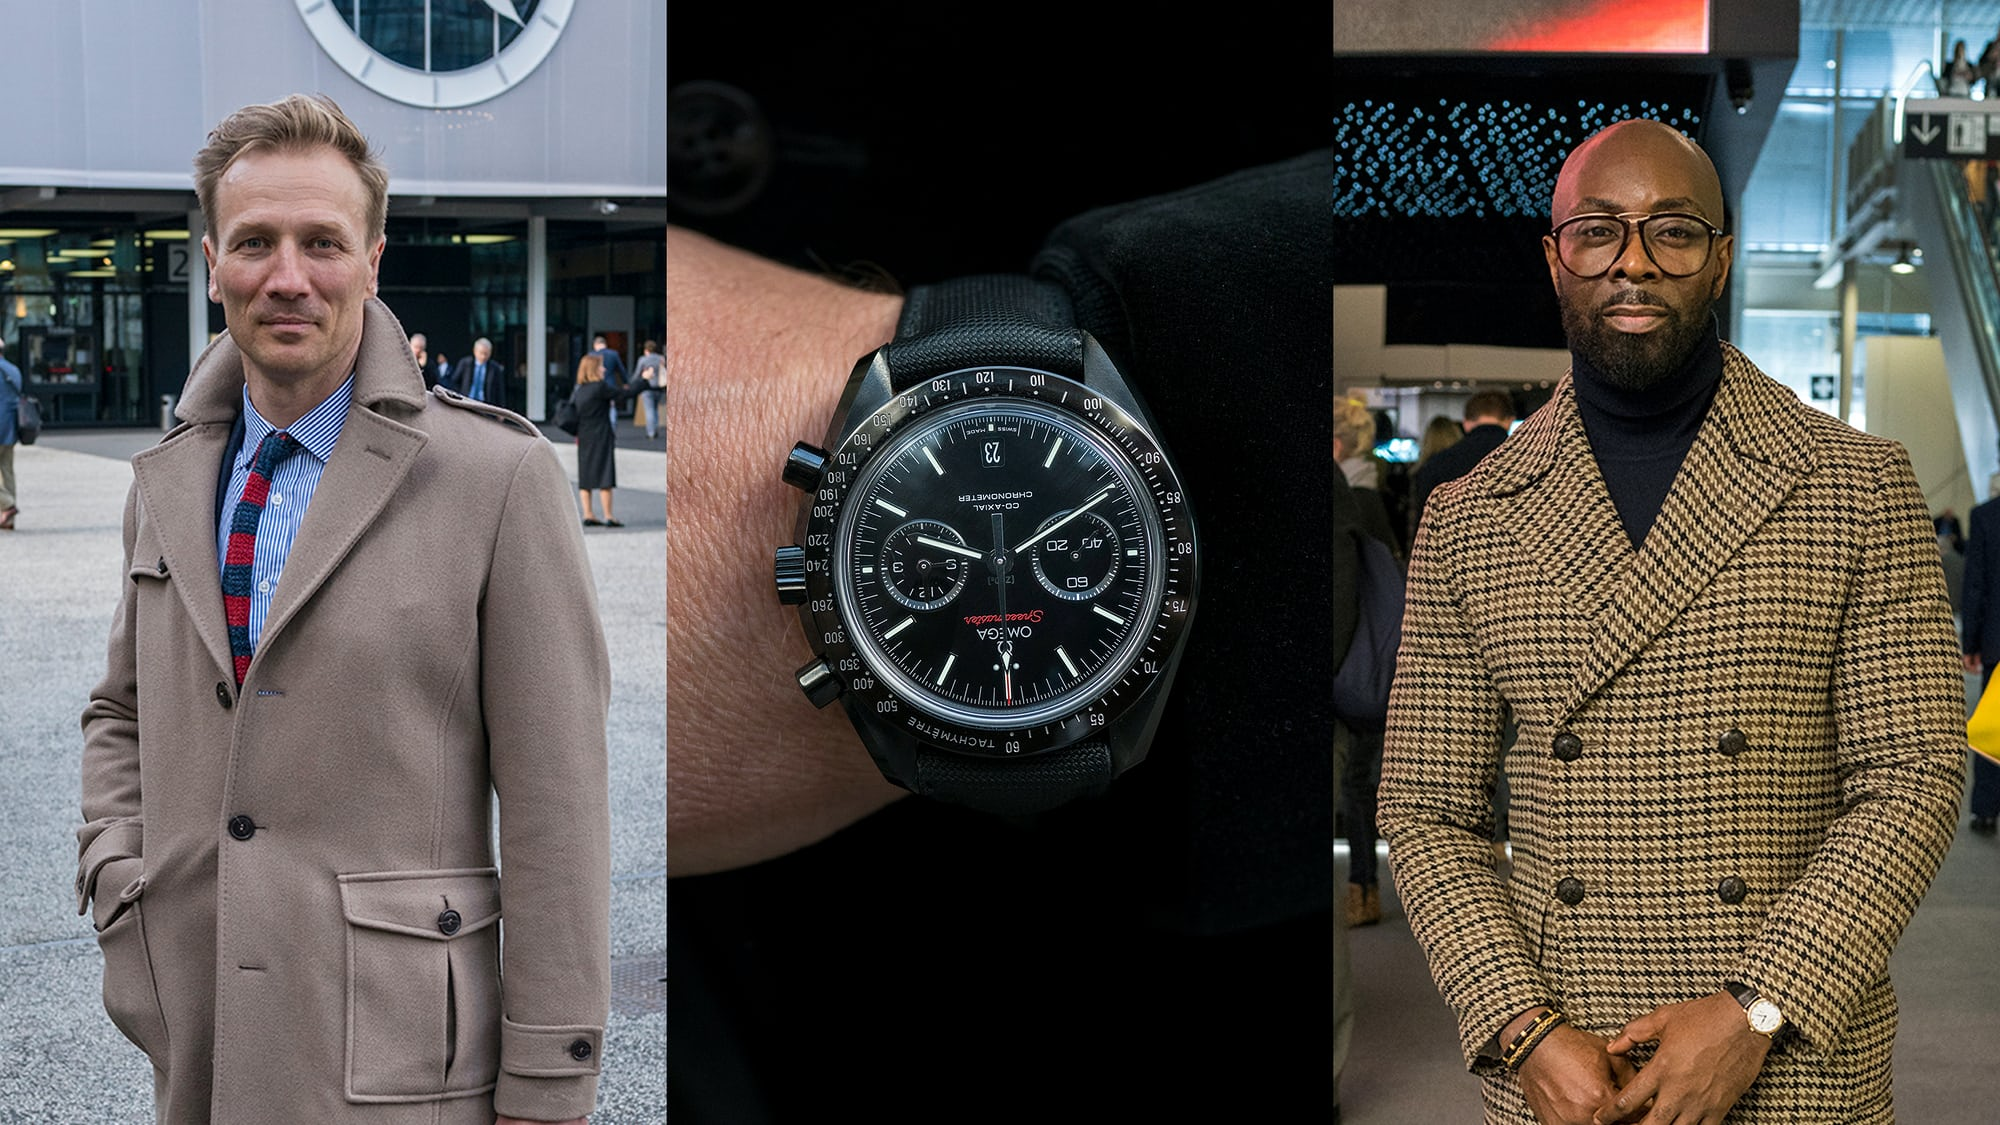 Photo Report: The Fashion And Watches Of Baselworld 2018 Photo Report: The Fashion And Watches Of Baselworld 2018 Street Style Hero Final